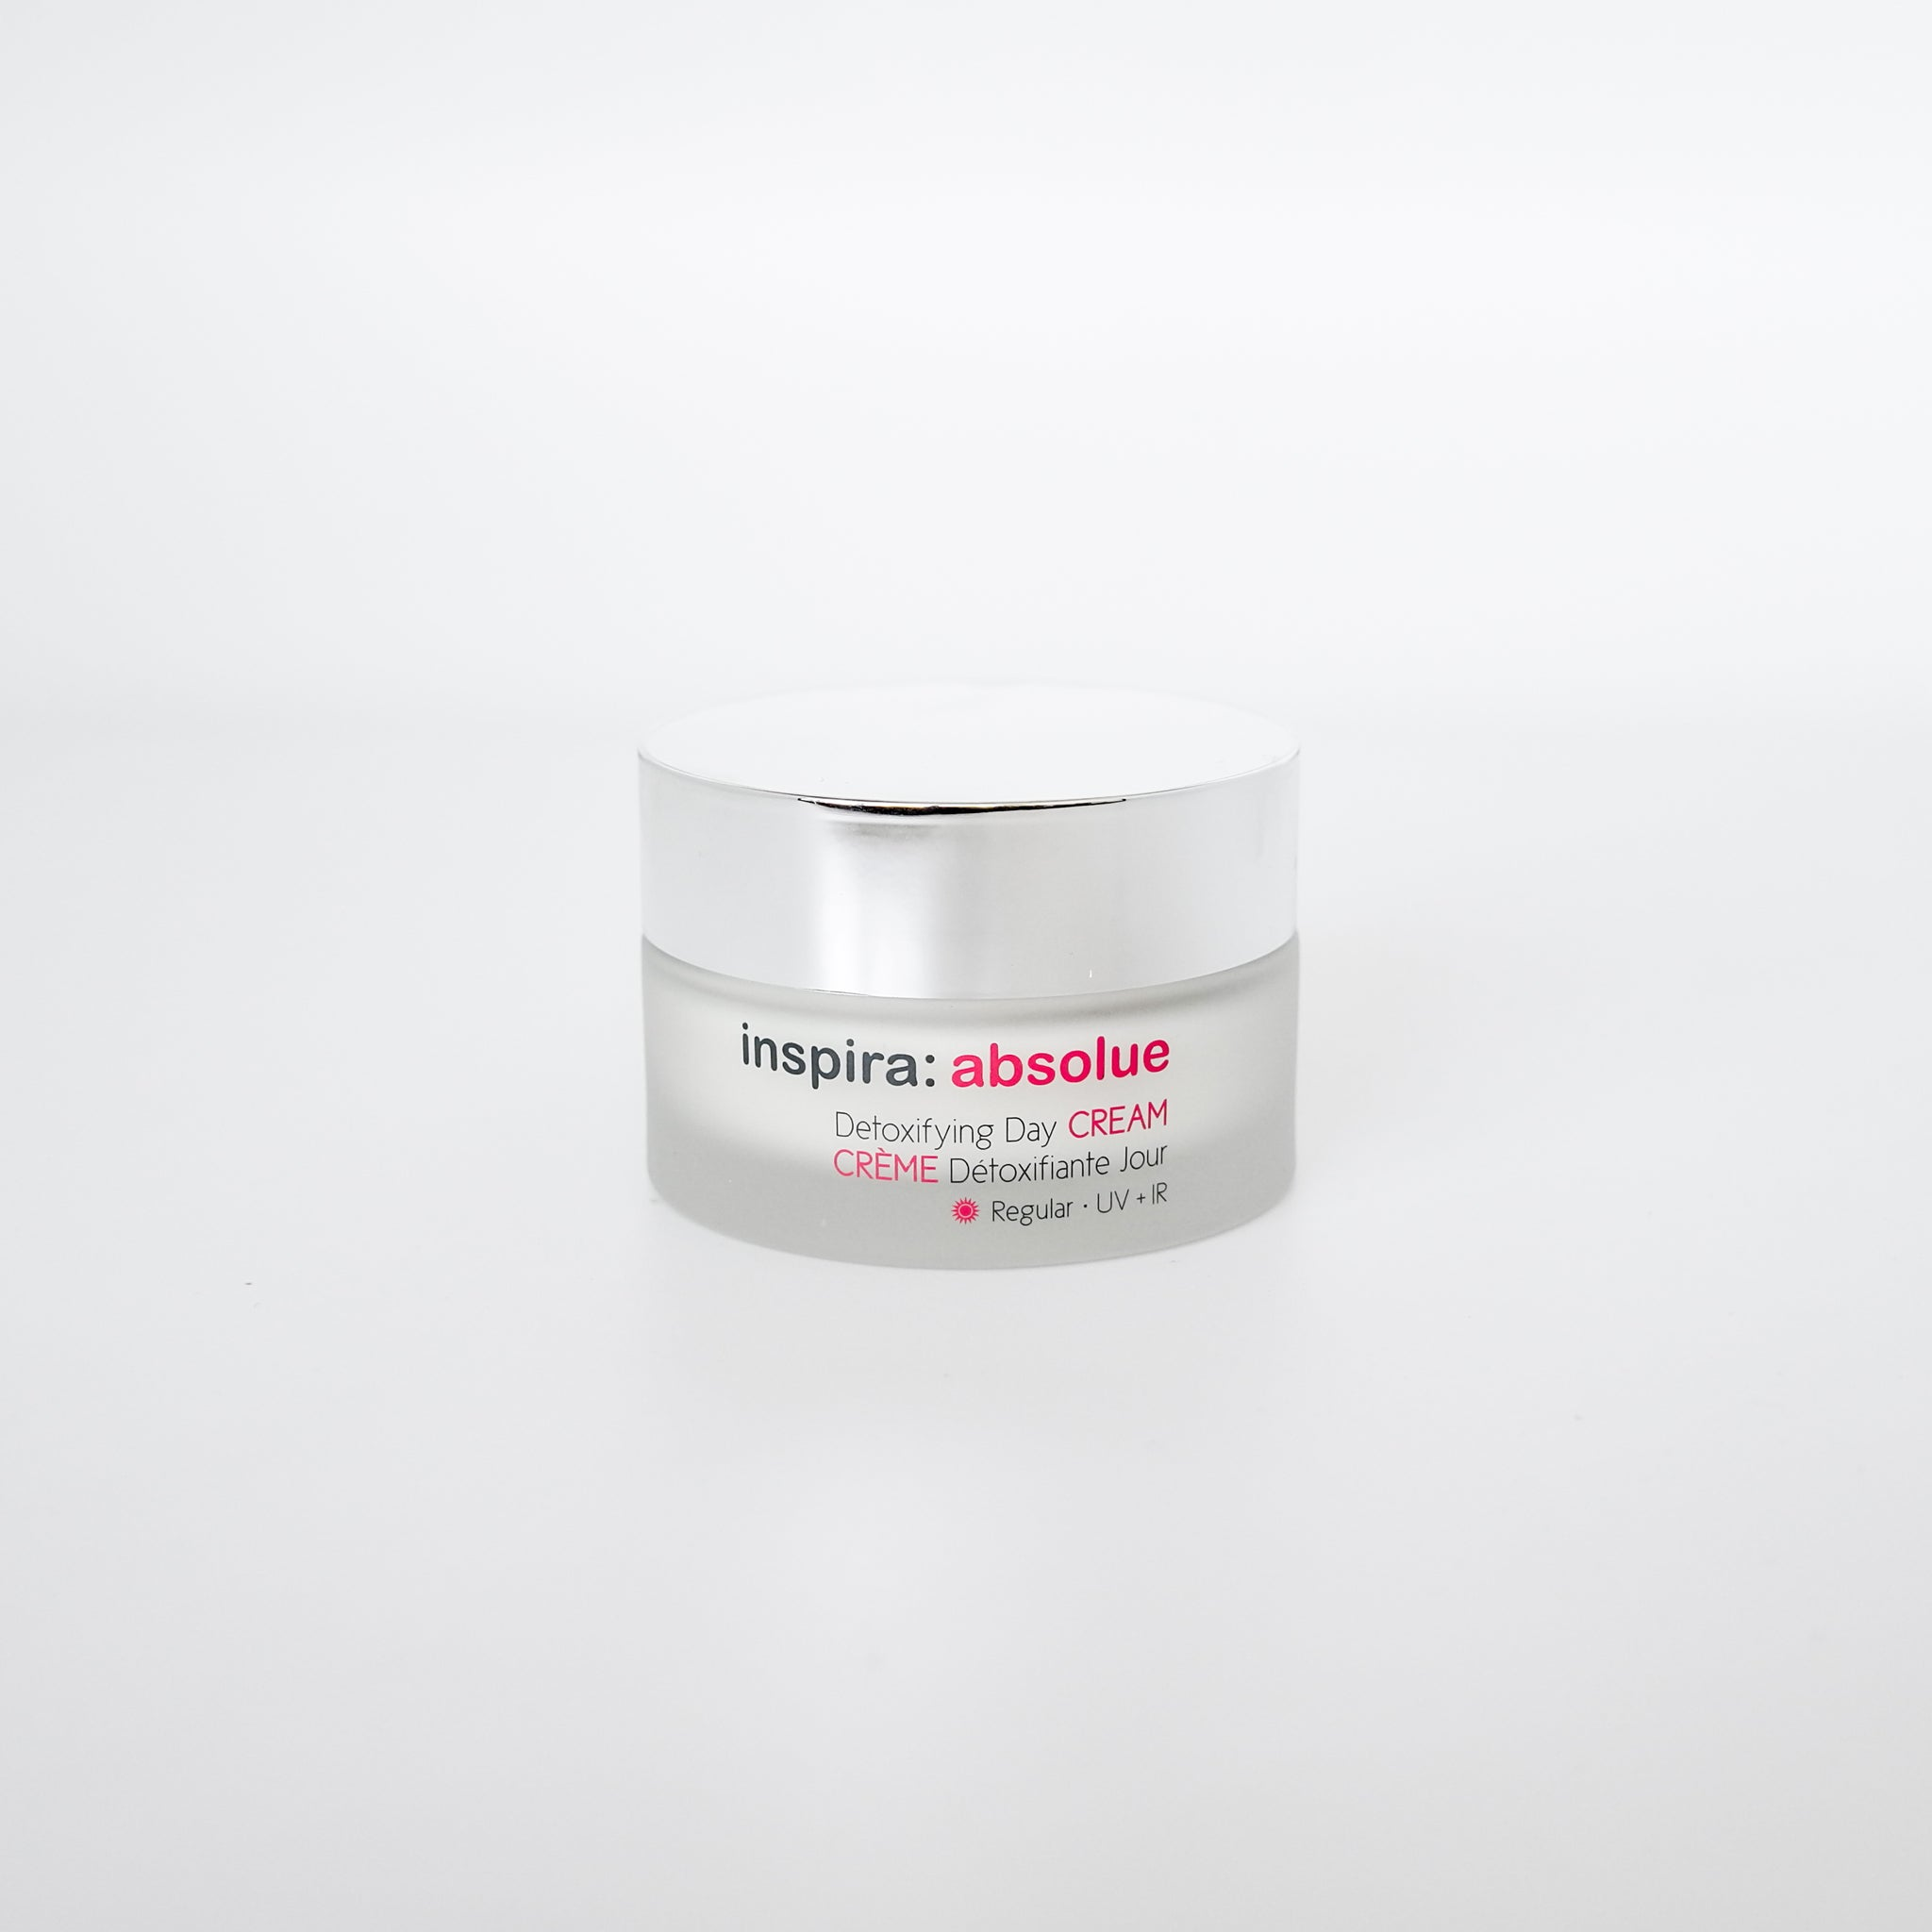 inspira:absolue Detoxifying Day Cream, Moisturizing, Inspira Absolue - Astrid Wylde